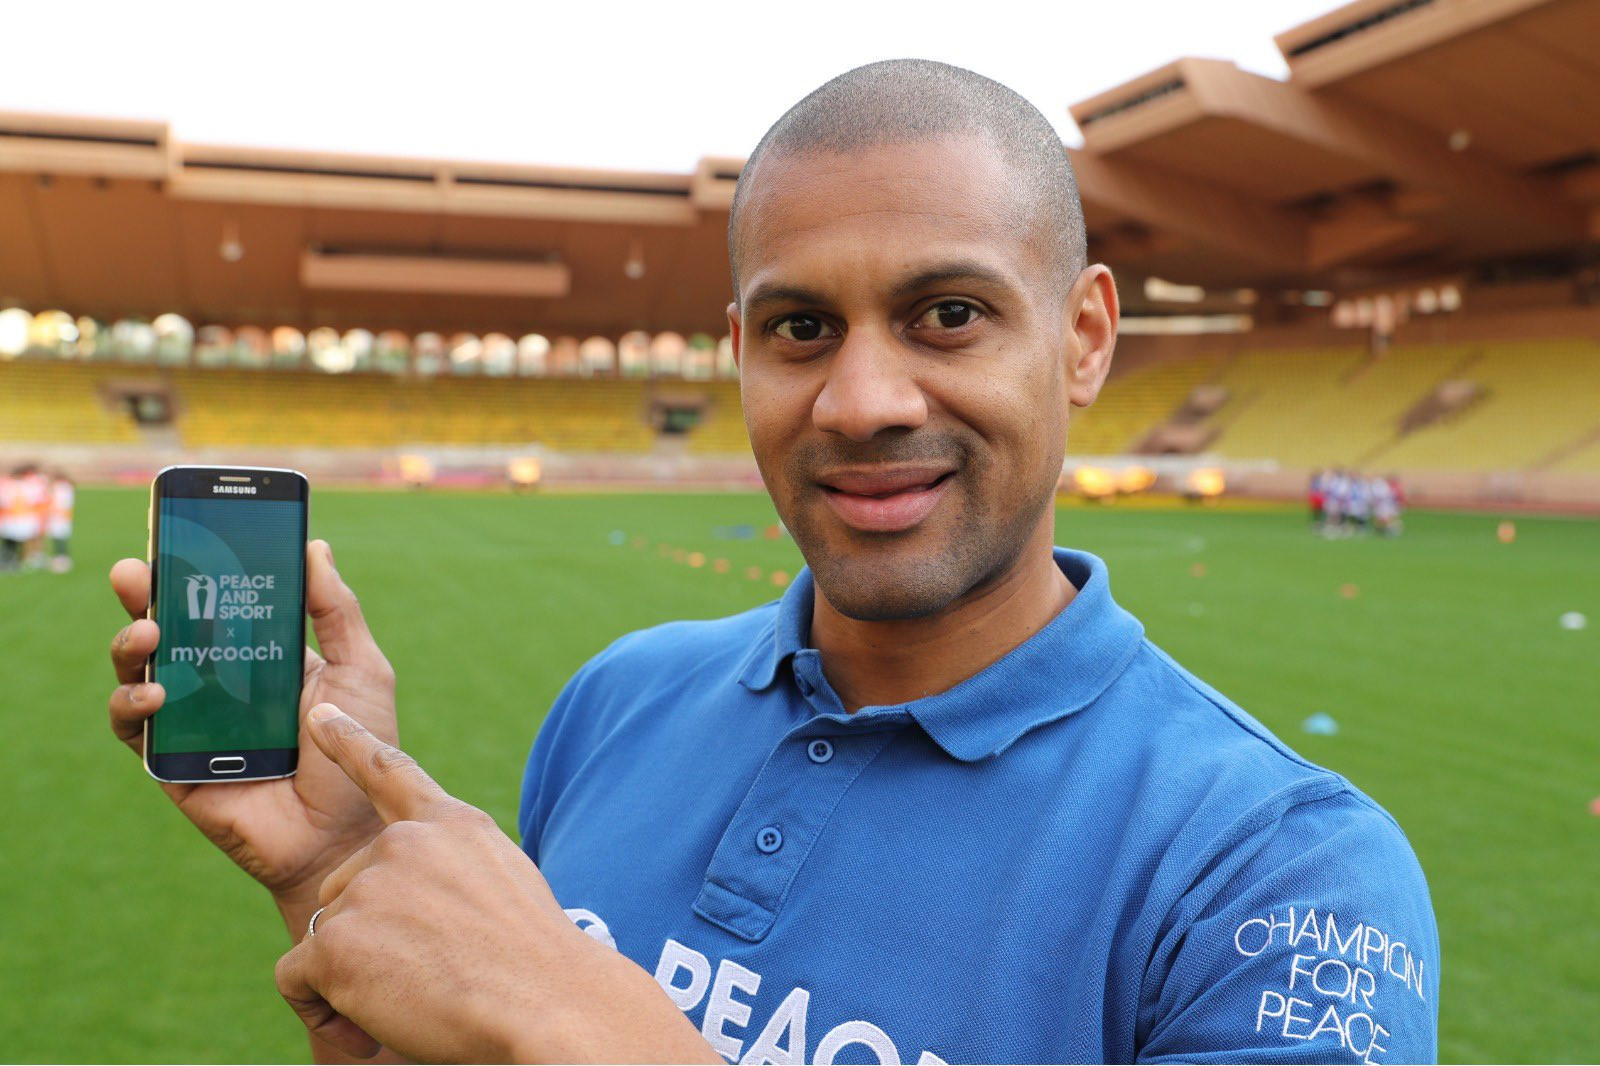 Peace and Sport launch app with My Coach